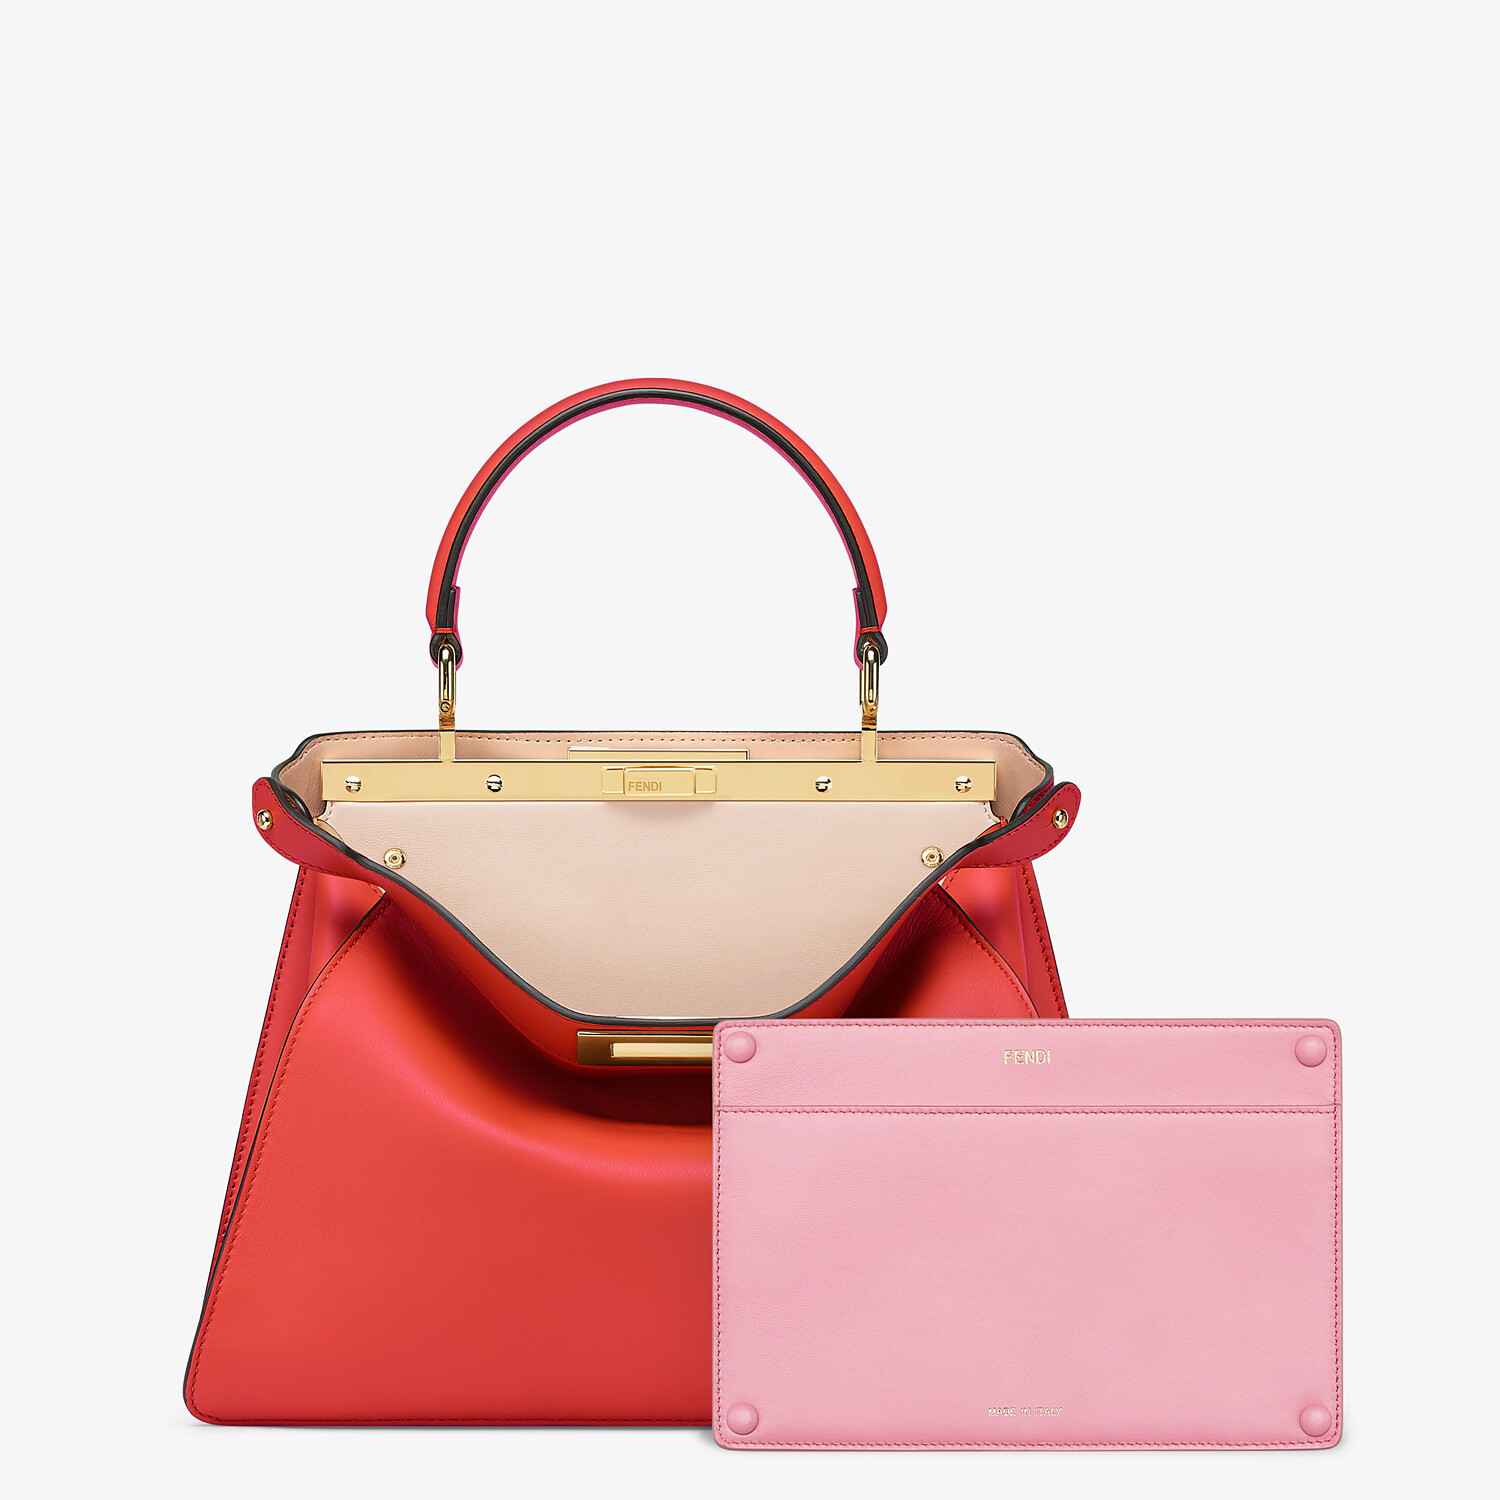 FENDI PEEKABOO ISEEU MEDIUM - Bag from the Lunar New Year Limited Capsule Collection - view 3 detail